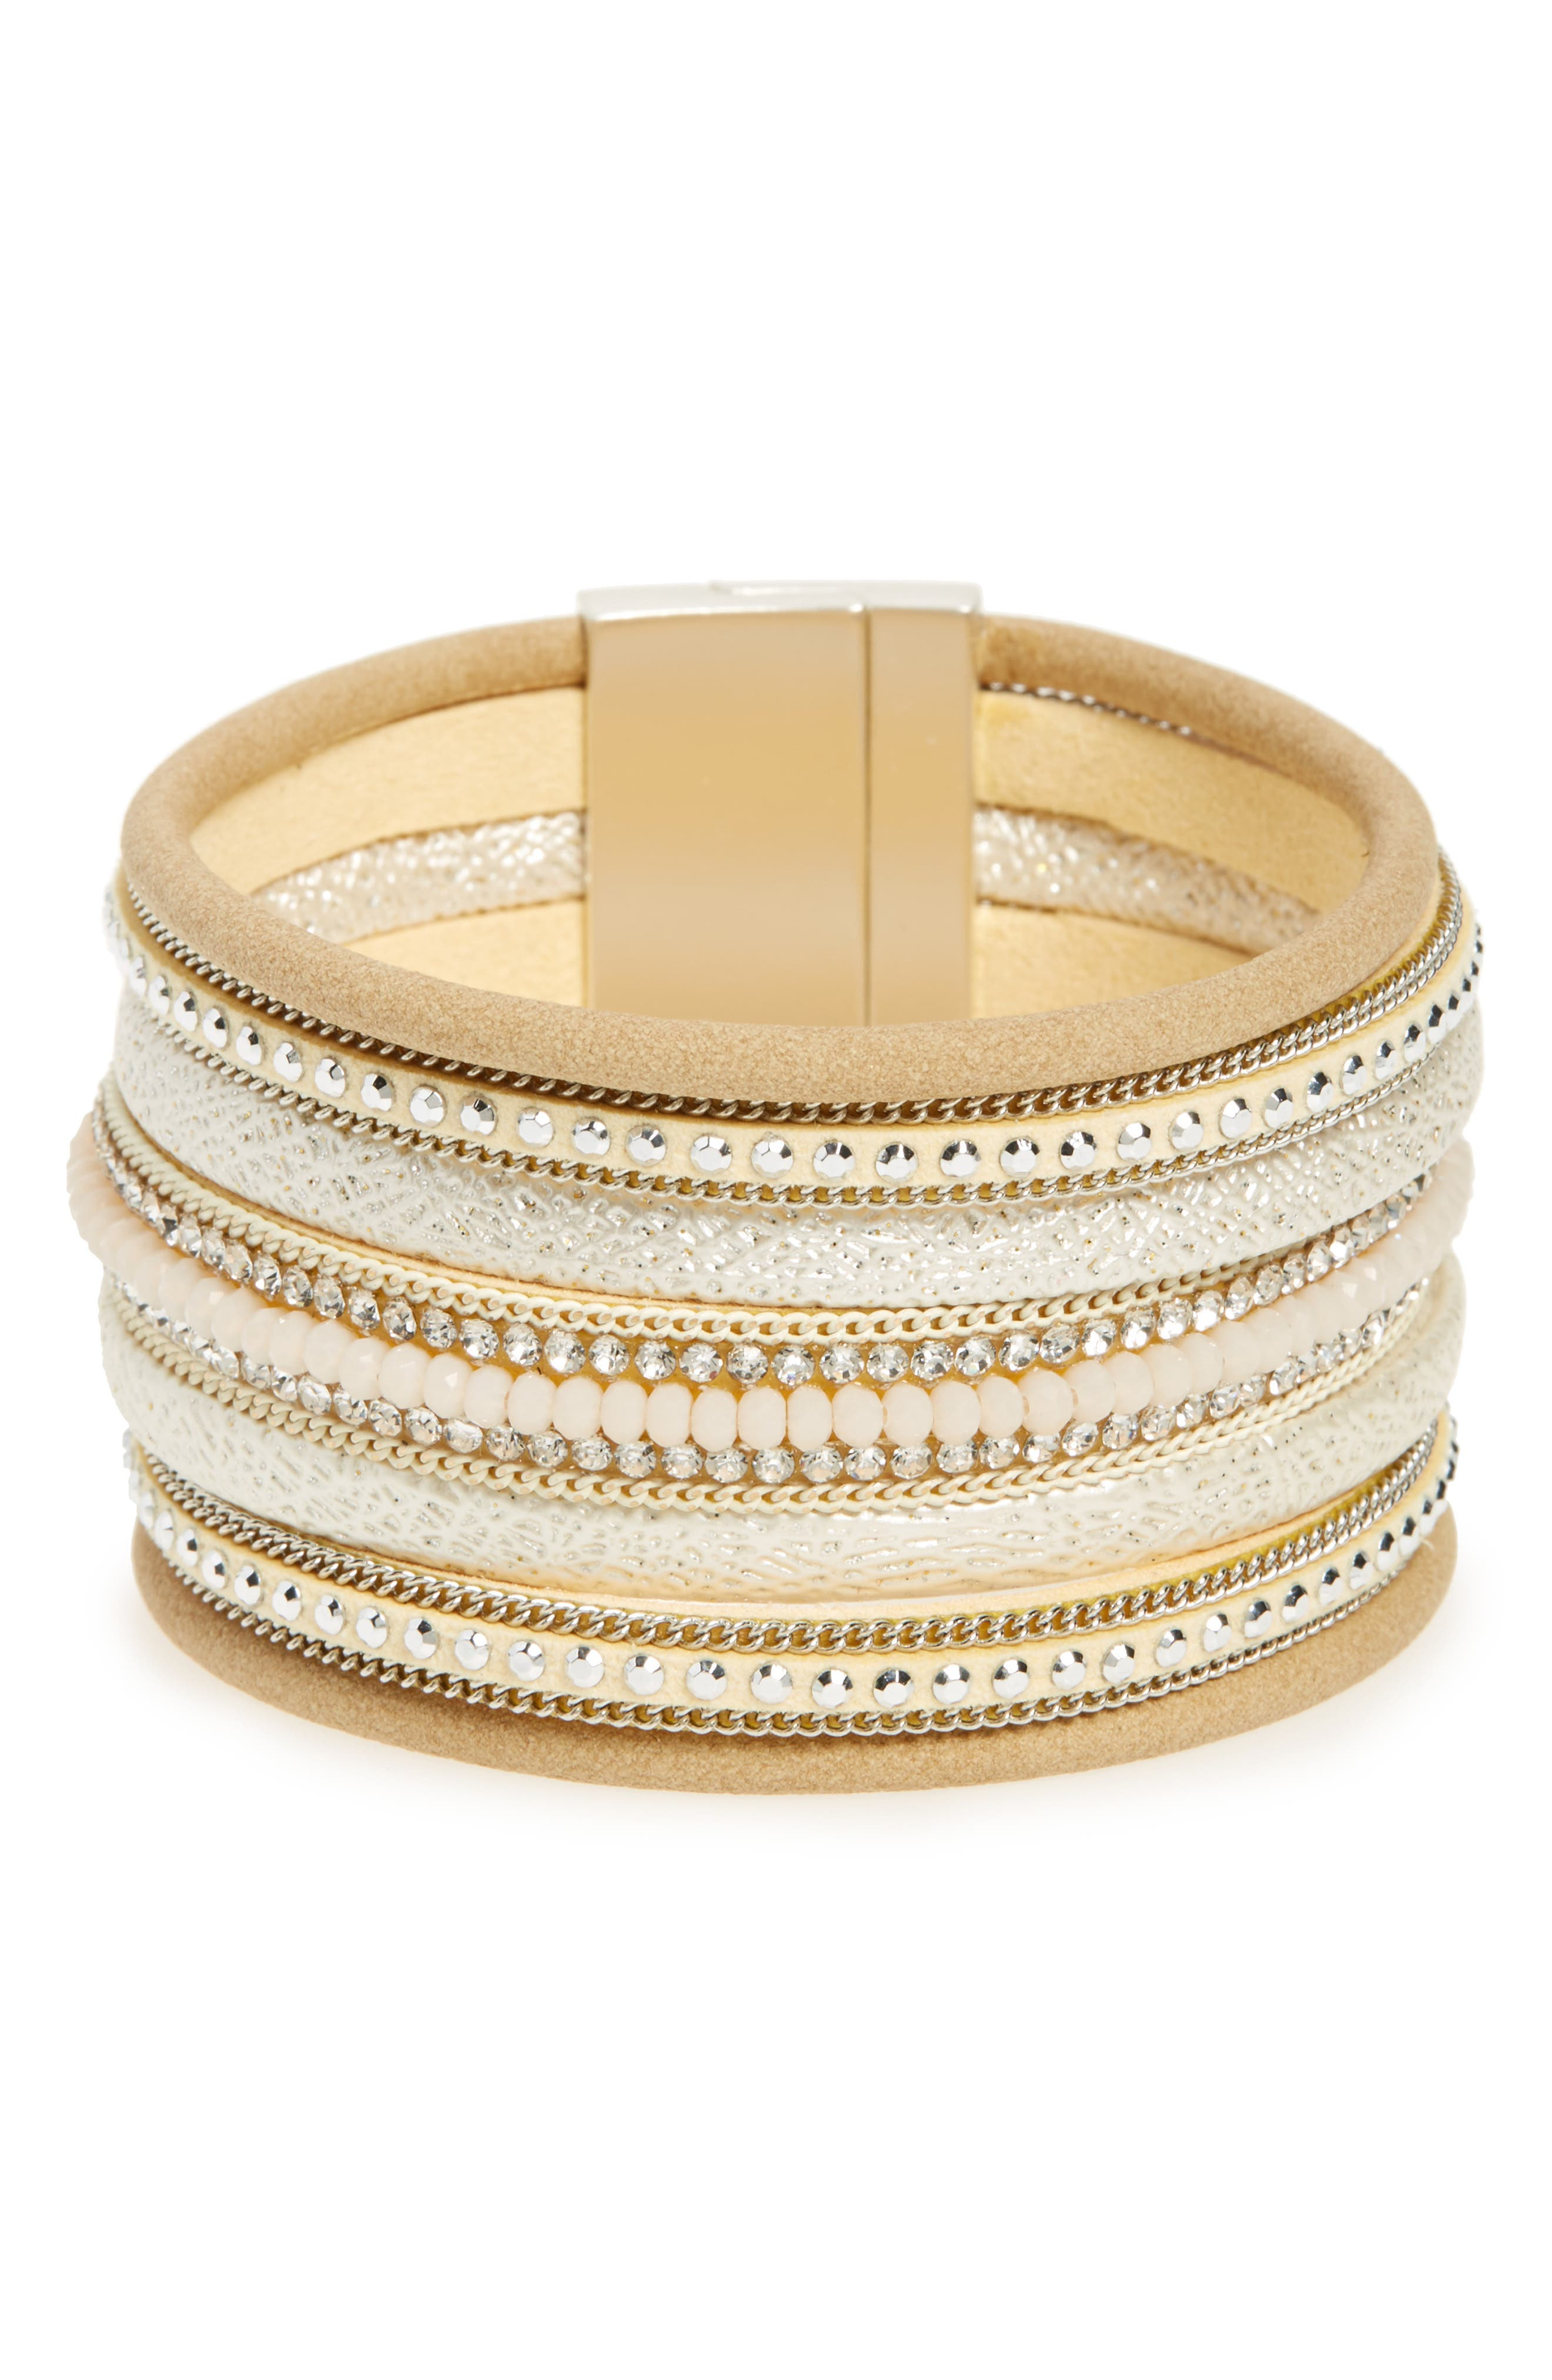 Panacea Multirow Bracelet